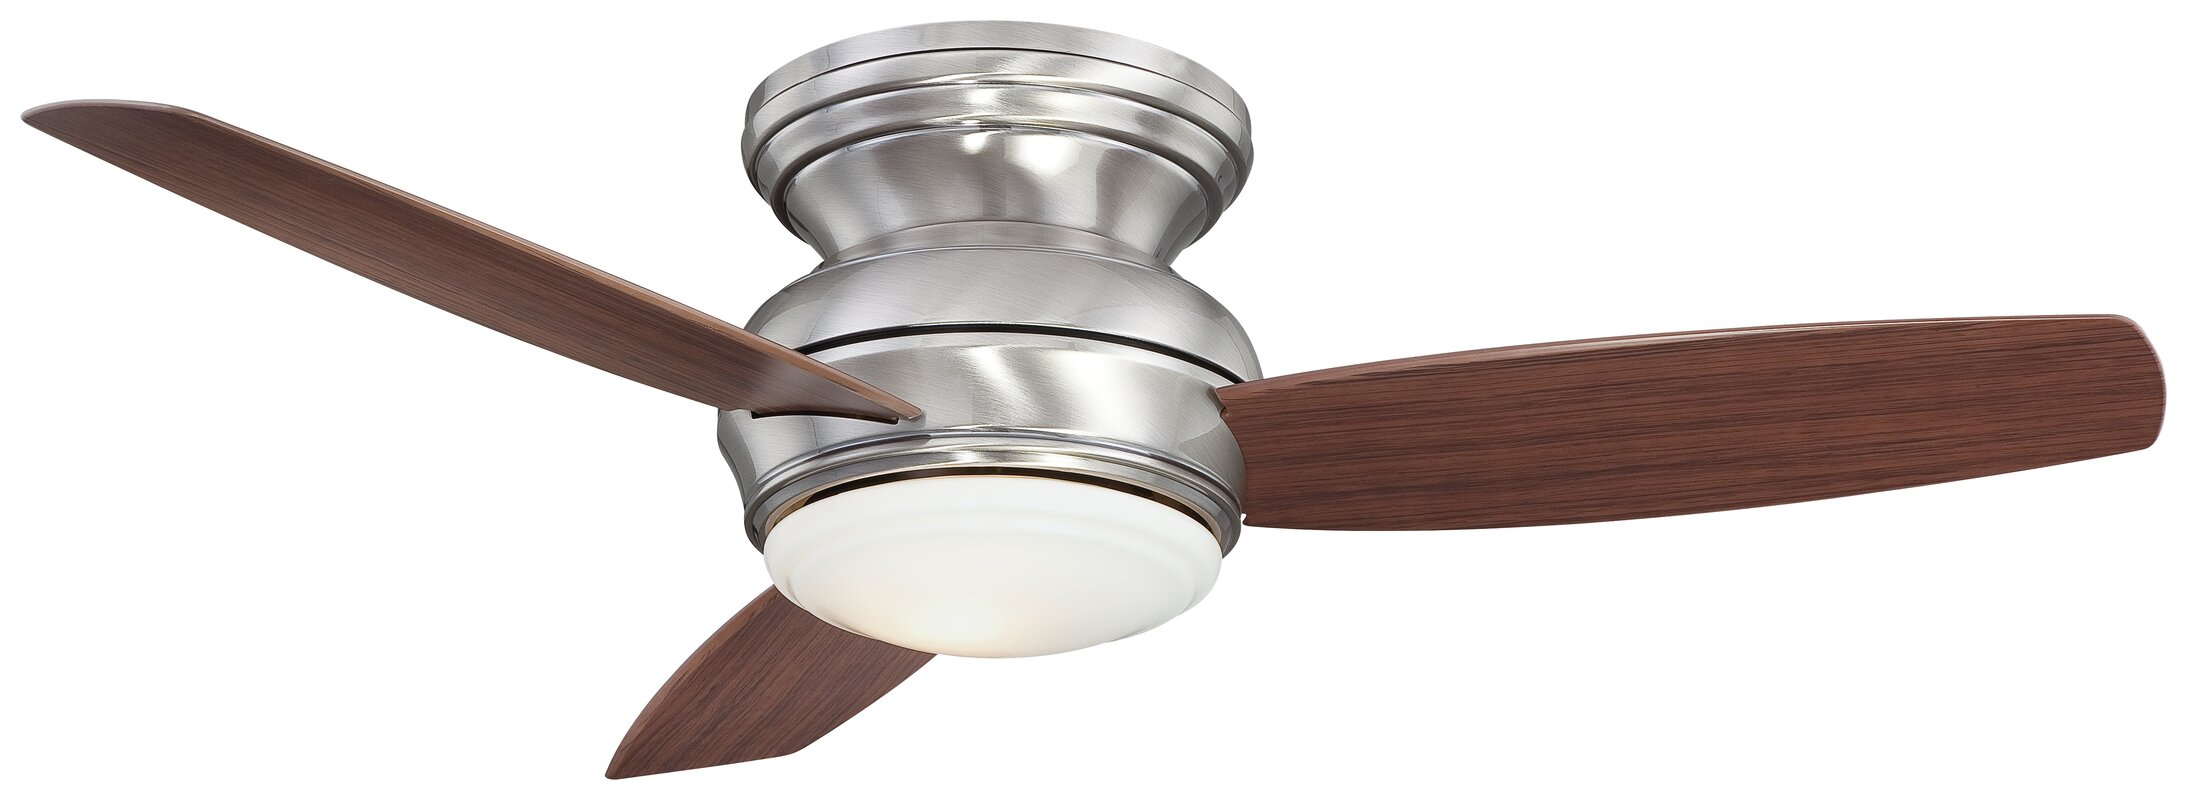 Minka aire 52 concept led 3 blade outdoor ceiling fan reviews 52 concept led 3 blade outdoor ceiling fan aloadofball Choice Image